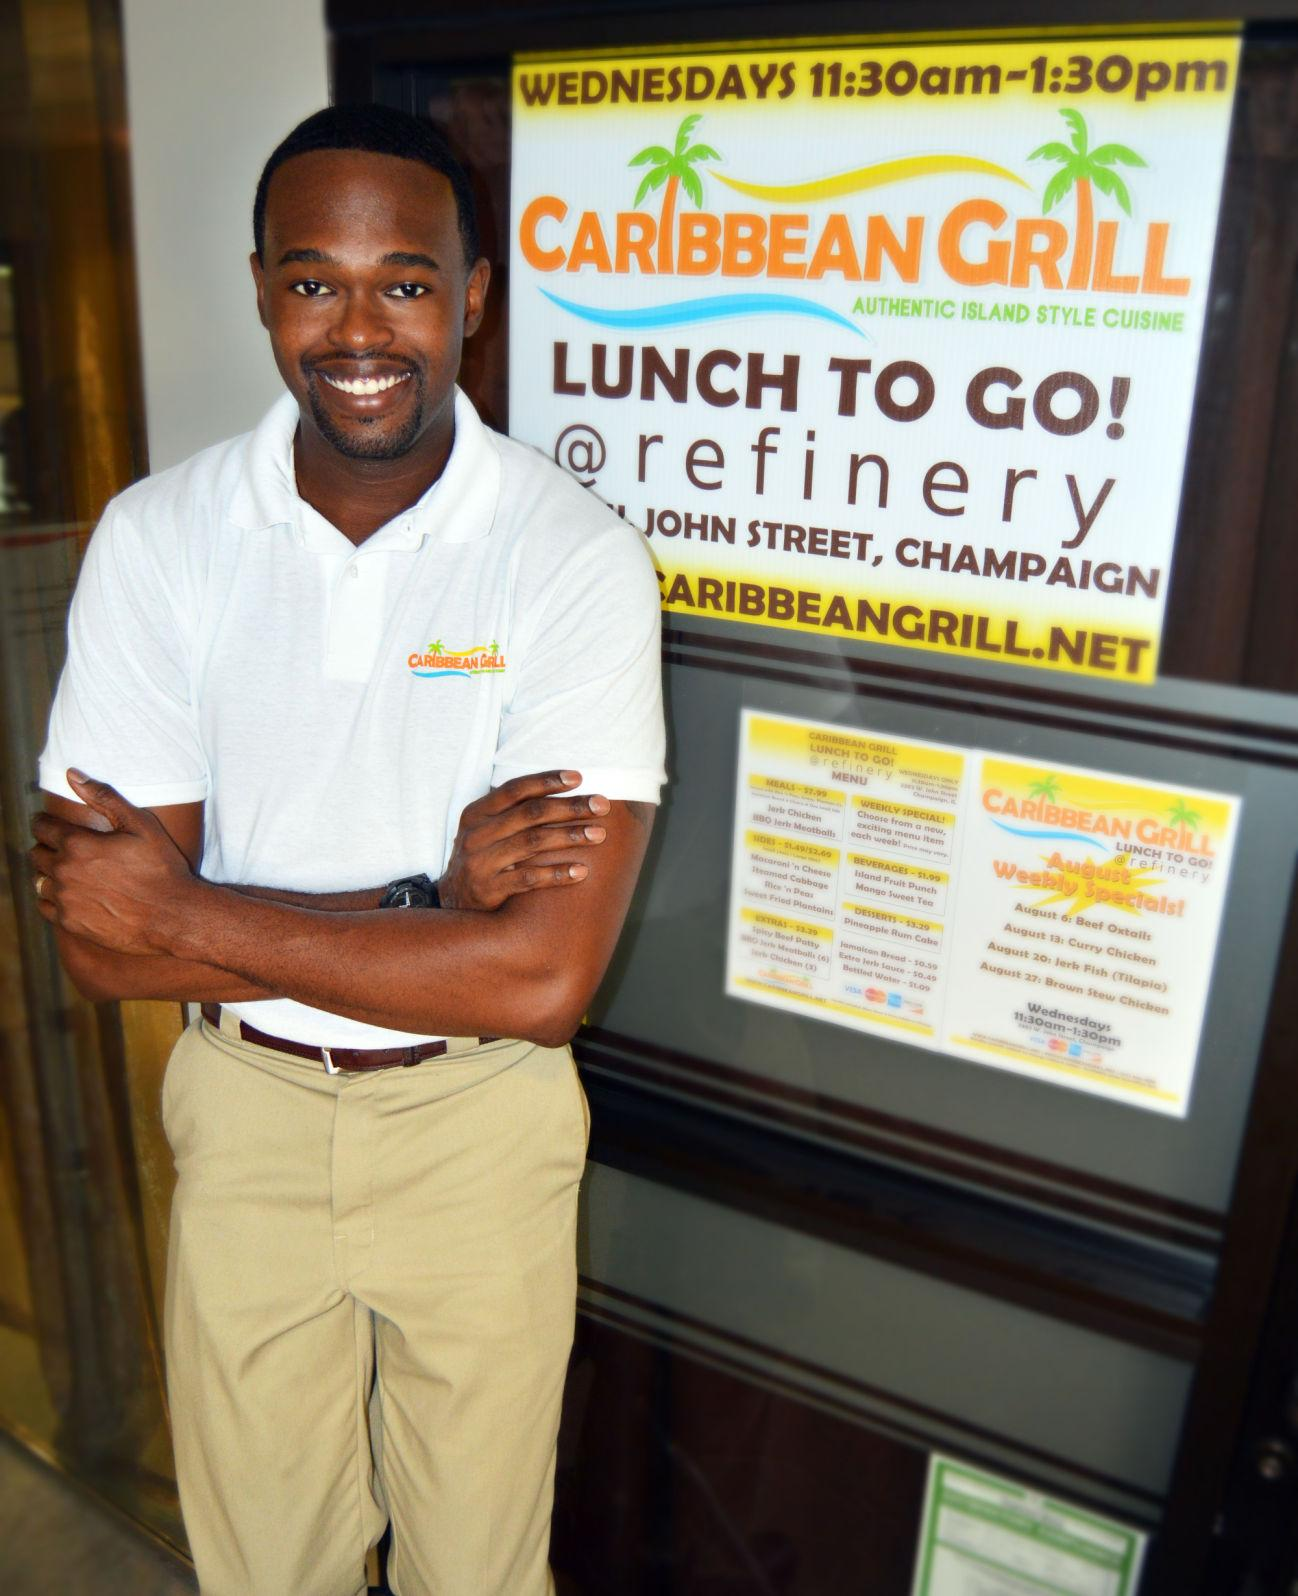 Mike Harden, 2005 University MBA alumnus, started his catering and lunch carryout food service Caribbean Grill in 2010. The business is expanding from its food truck and catering services to a permanent location, 2135 S Neil St., Champaign on Tuesday, May 30.